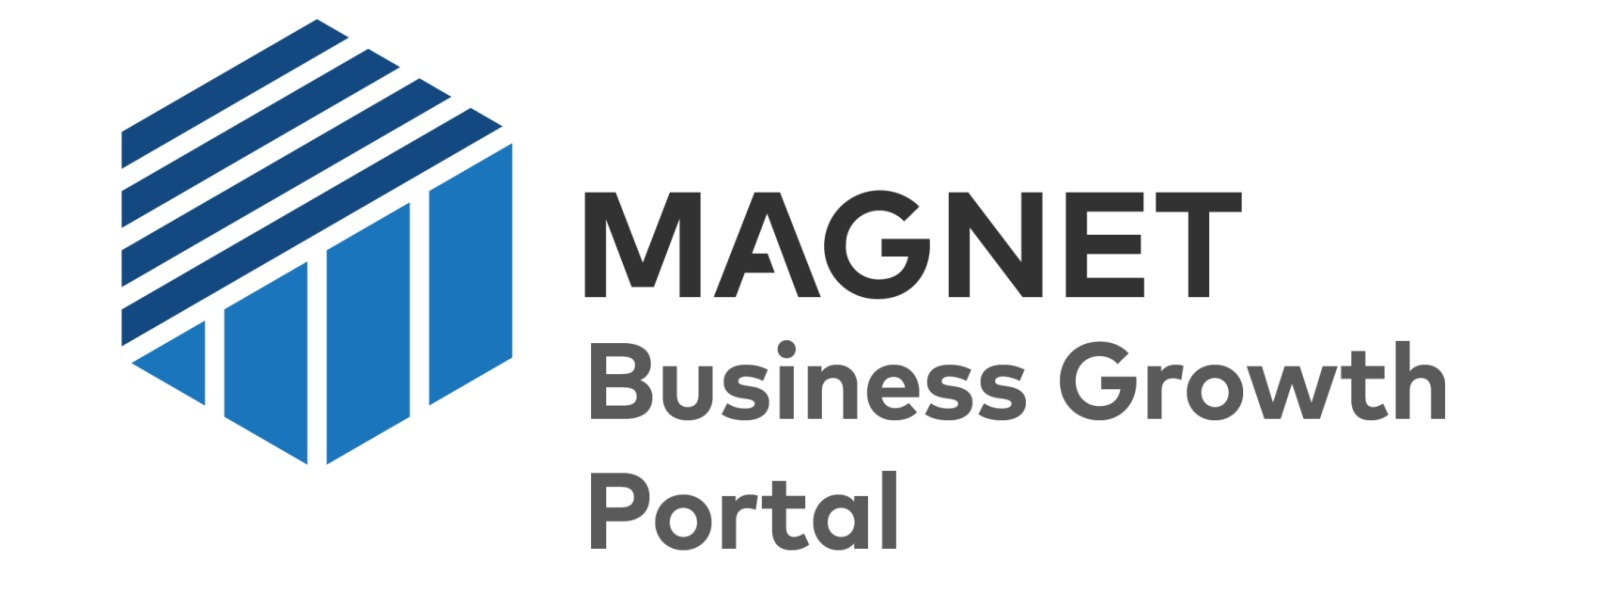 Magnet Business Growth Portal